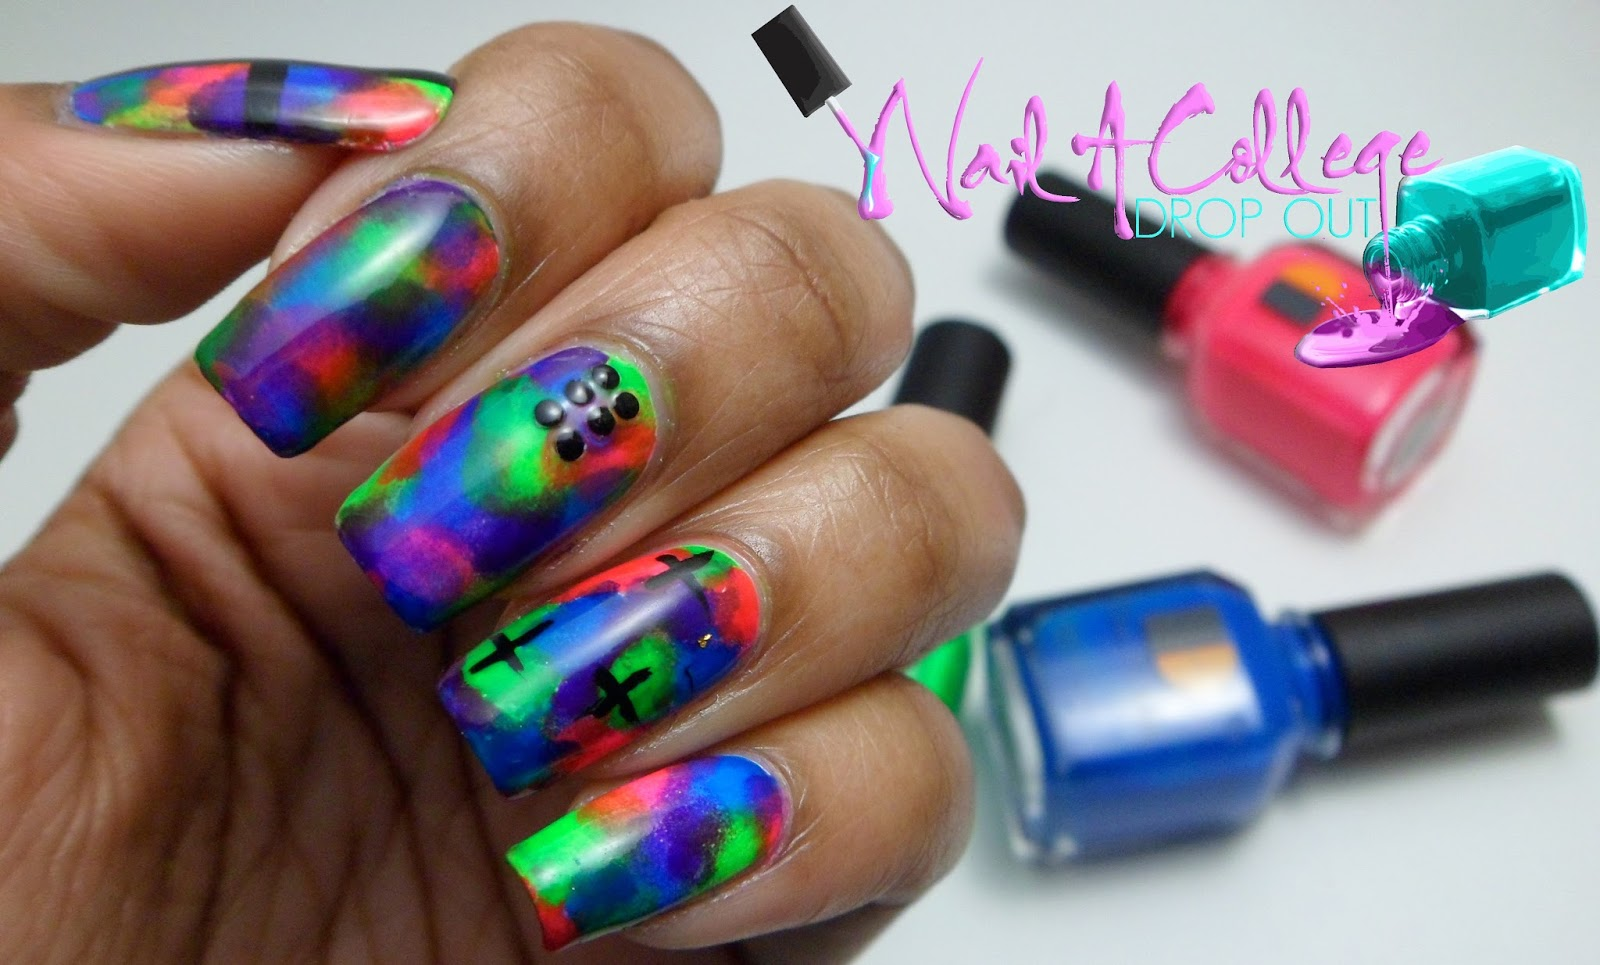 Nail A College Drop Out: Do You... Like Nails?